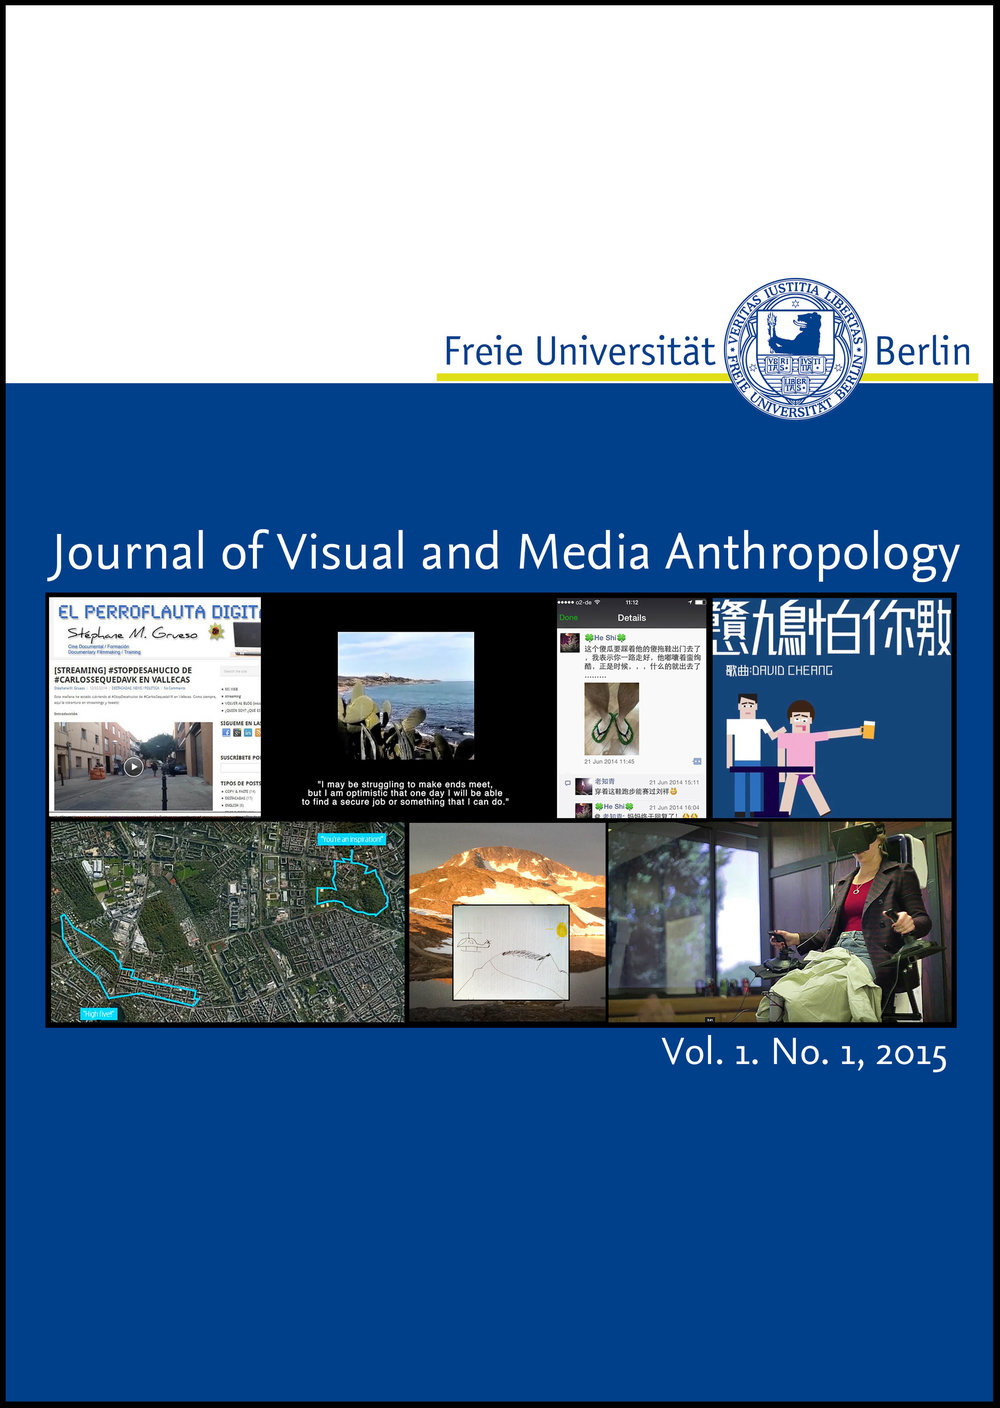 JOURNAL OF VISUAL AND MEDIA ANTHROPOLOGY - The Journal of Visual and Media Anthropology is a a peer-reviewed open-access journal dedicated to research on digital environments and cultures, the impact of new media on expressions of self and social formations, the theory and practice of ethnographic filmmaking and the study of online- and offline visual worlds. The journal is a venture of Freie Universität Berlin's Research Area Visual and Media Anthropology. It will present written works, machinima and short films that self-consciously experiment with innovative modes of representation, new forms of integrating written and multi-media ethnography and therefore seeks to challenge the conventions of academic publishing.EDITORS: PROF. DR. URTE UNDINE FRÖMMING, STEFFEN, KÖHN, MIKE TERRY. HERE